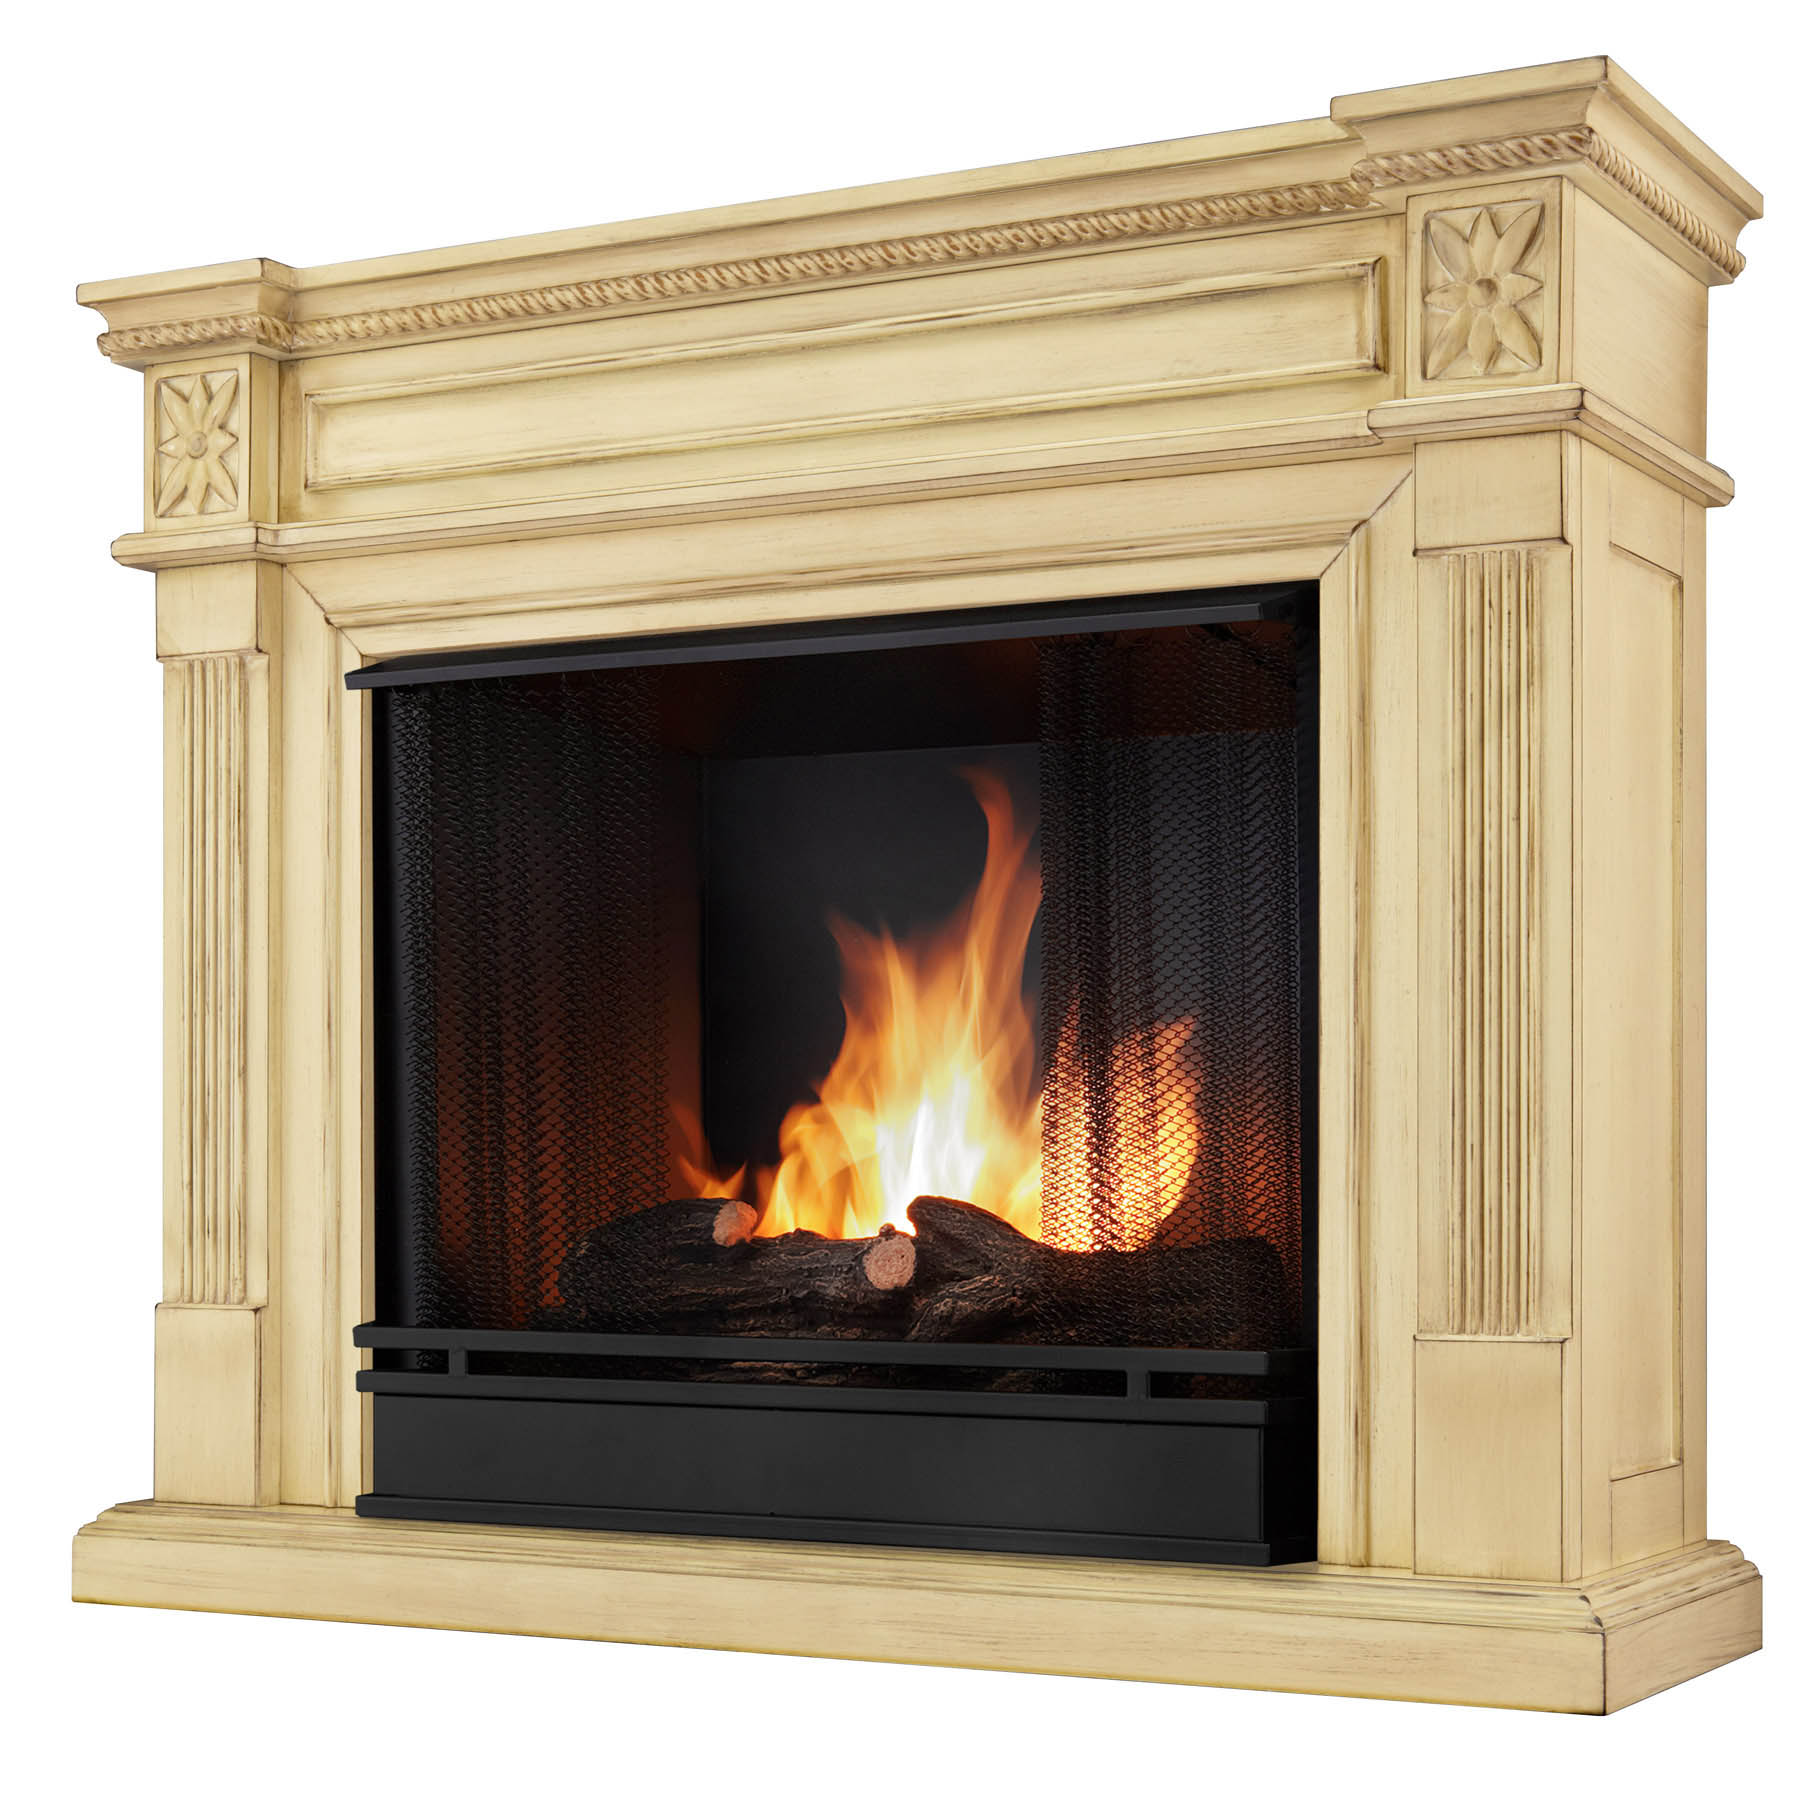 The Elise Real Flame Ventless Gel Fireplace